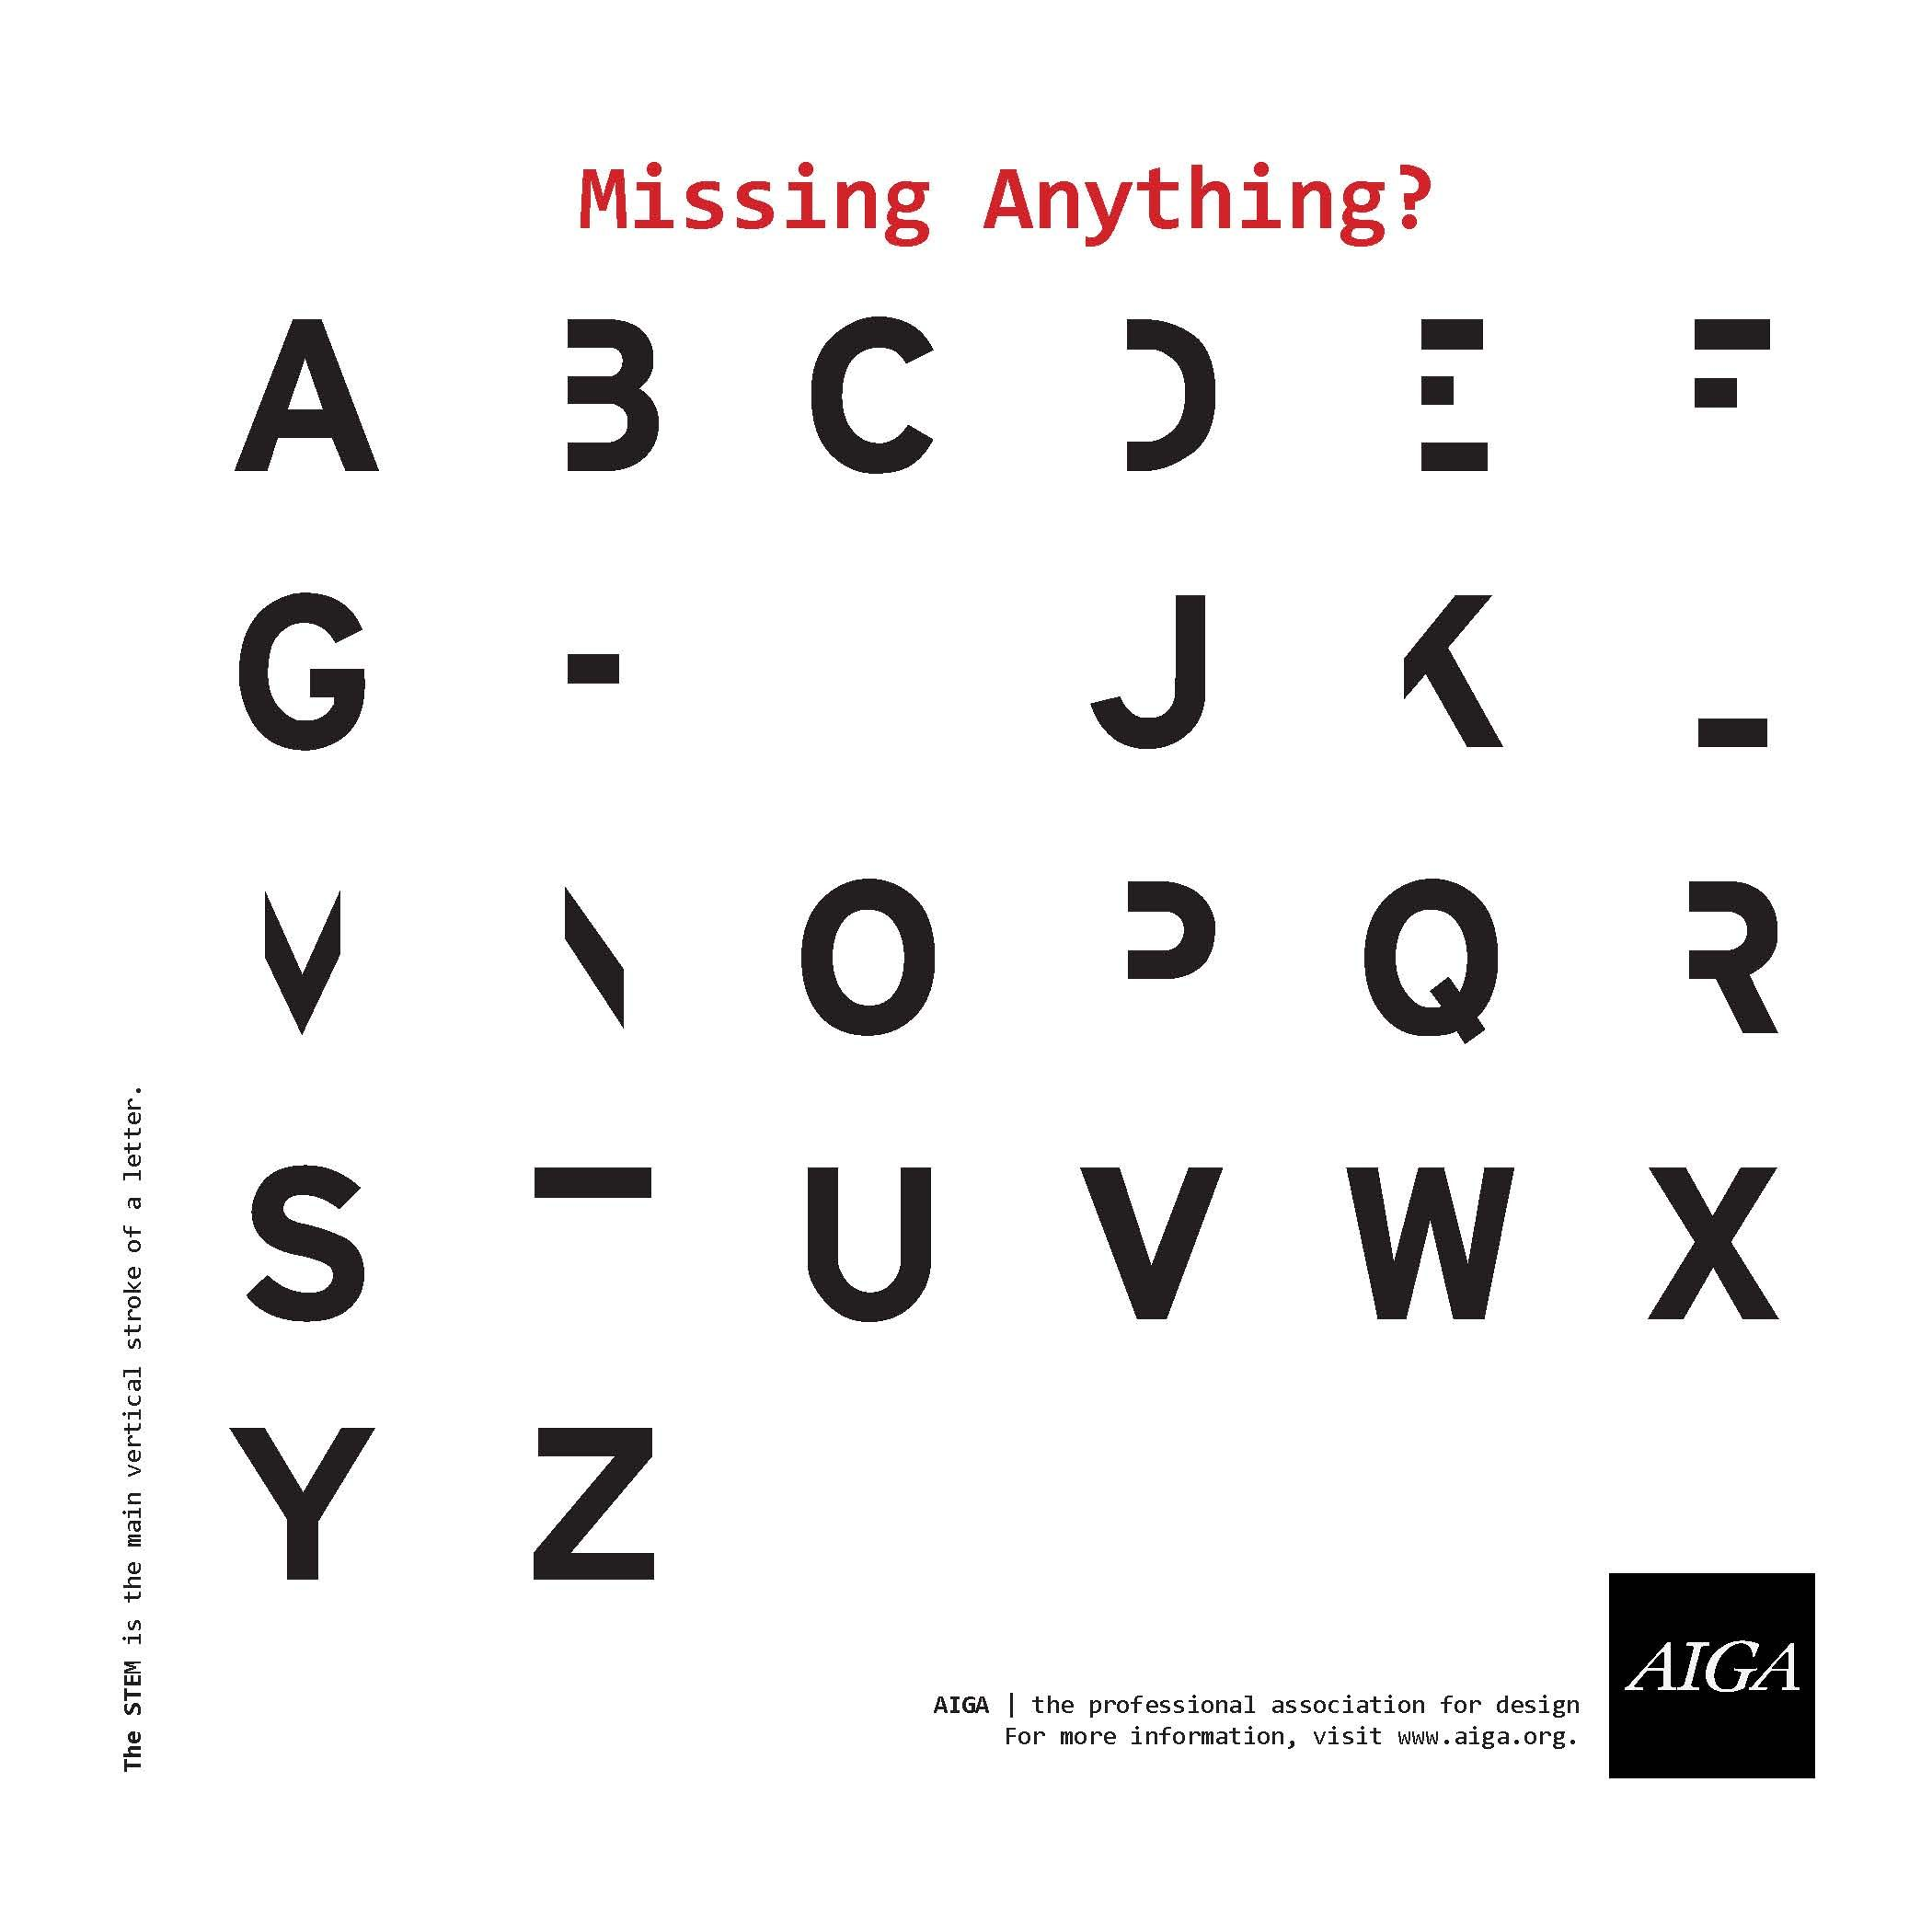 One can still understand the letters even with stems missing ...